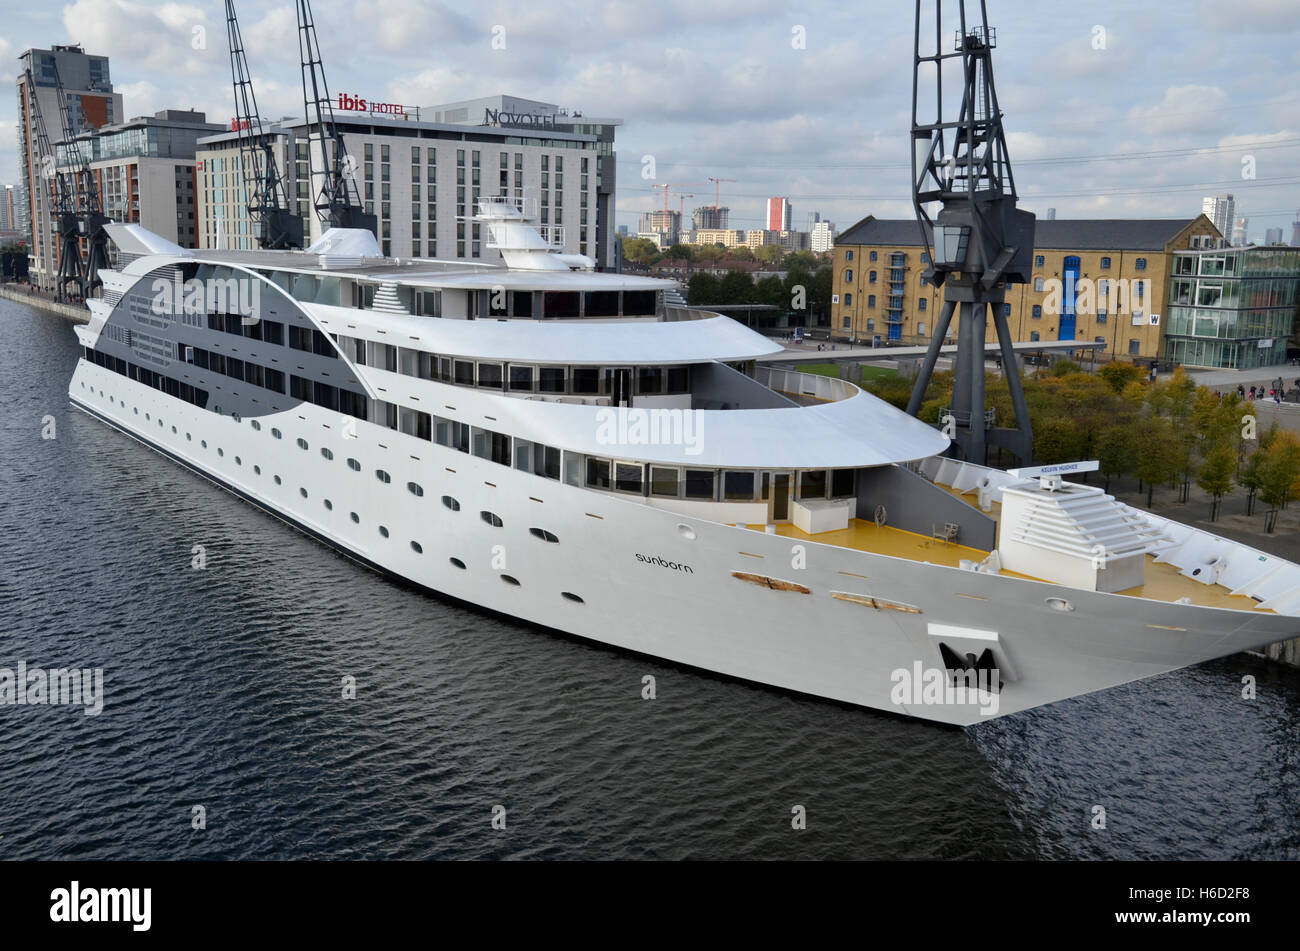 The Sunborn Yacht Hotel On Royal Victoria Dock In London's. Shangri-La Hotel Tokyo. Butua Residence. Hotel Enea. Boutique Bungalows. Palm Jumeirah Residences. Wrest Point Hotel. Trump International Hotel And Tower Toronto. Radisson Blu Hotel And Spa